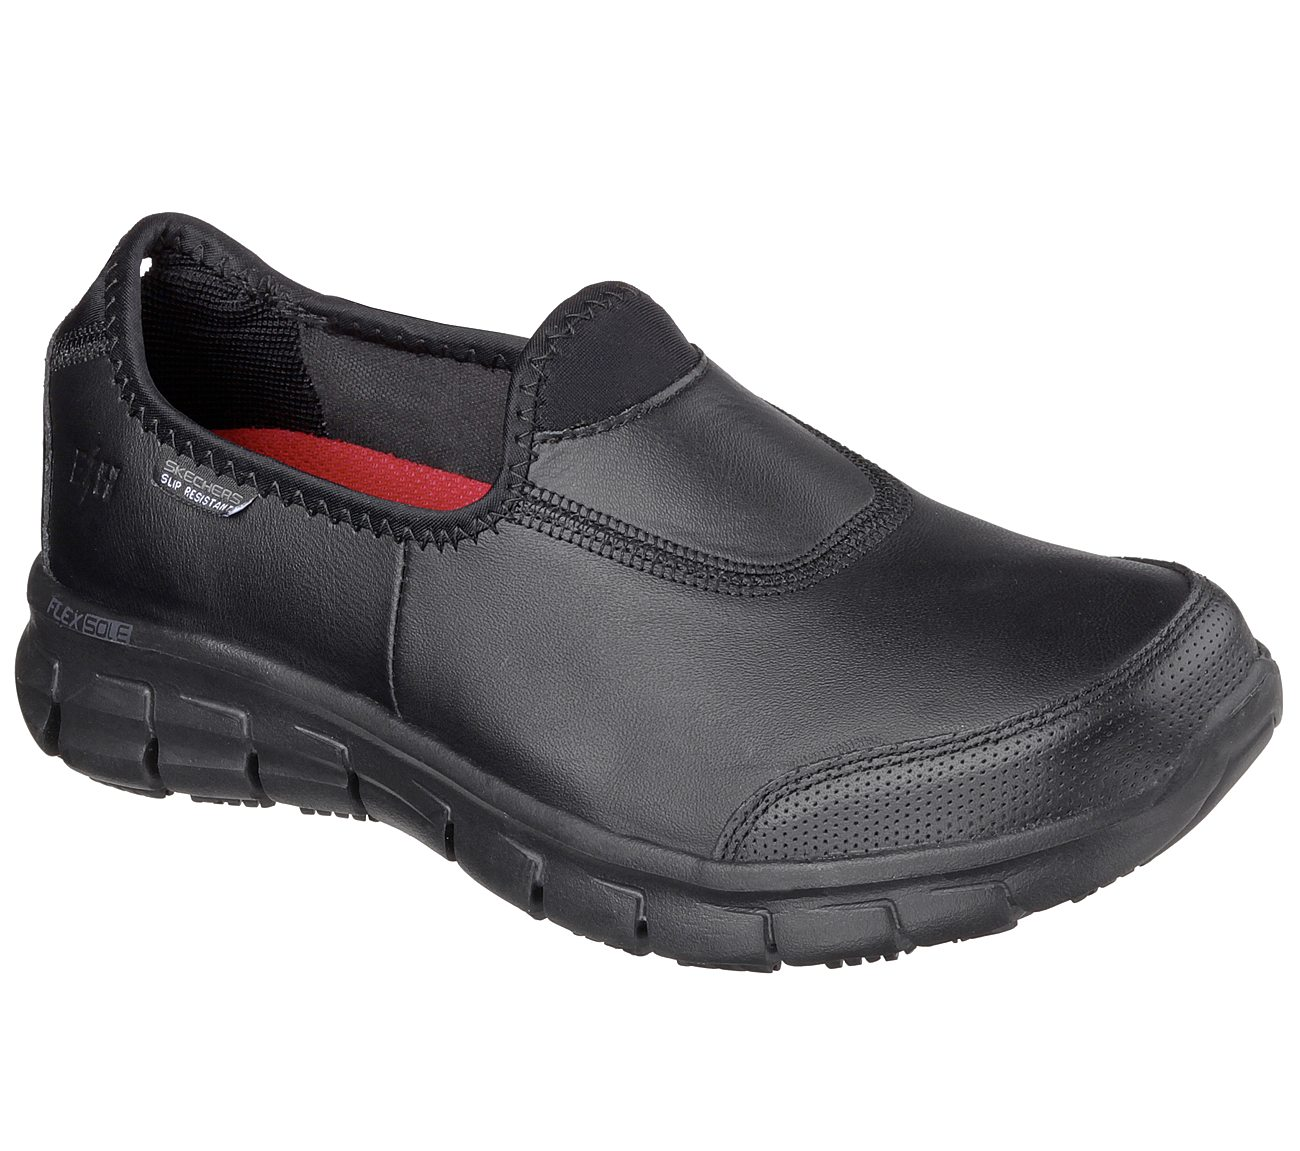 skechers black shoes for women